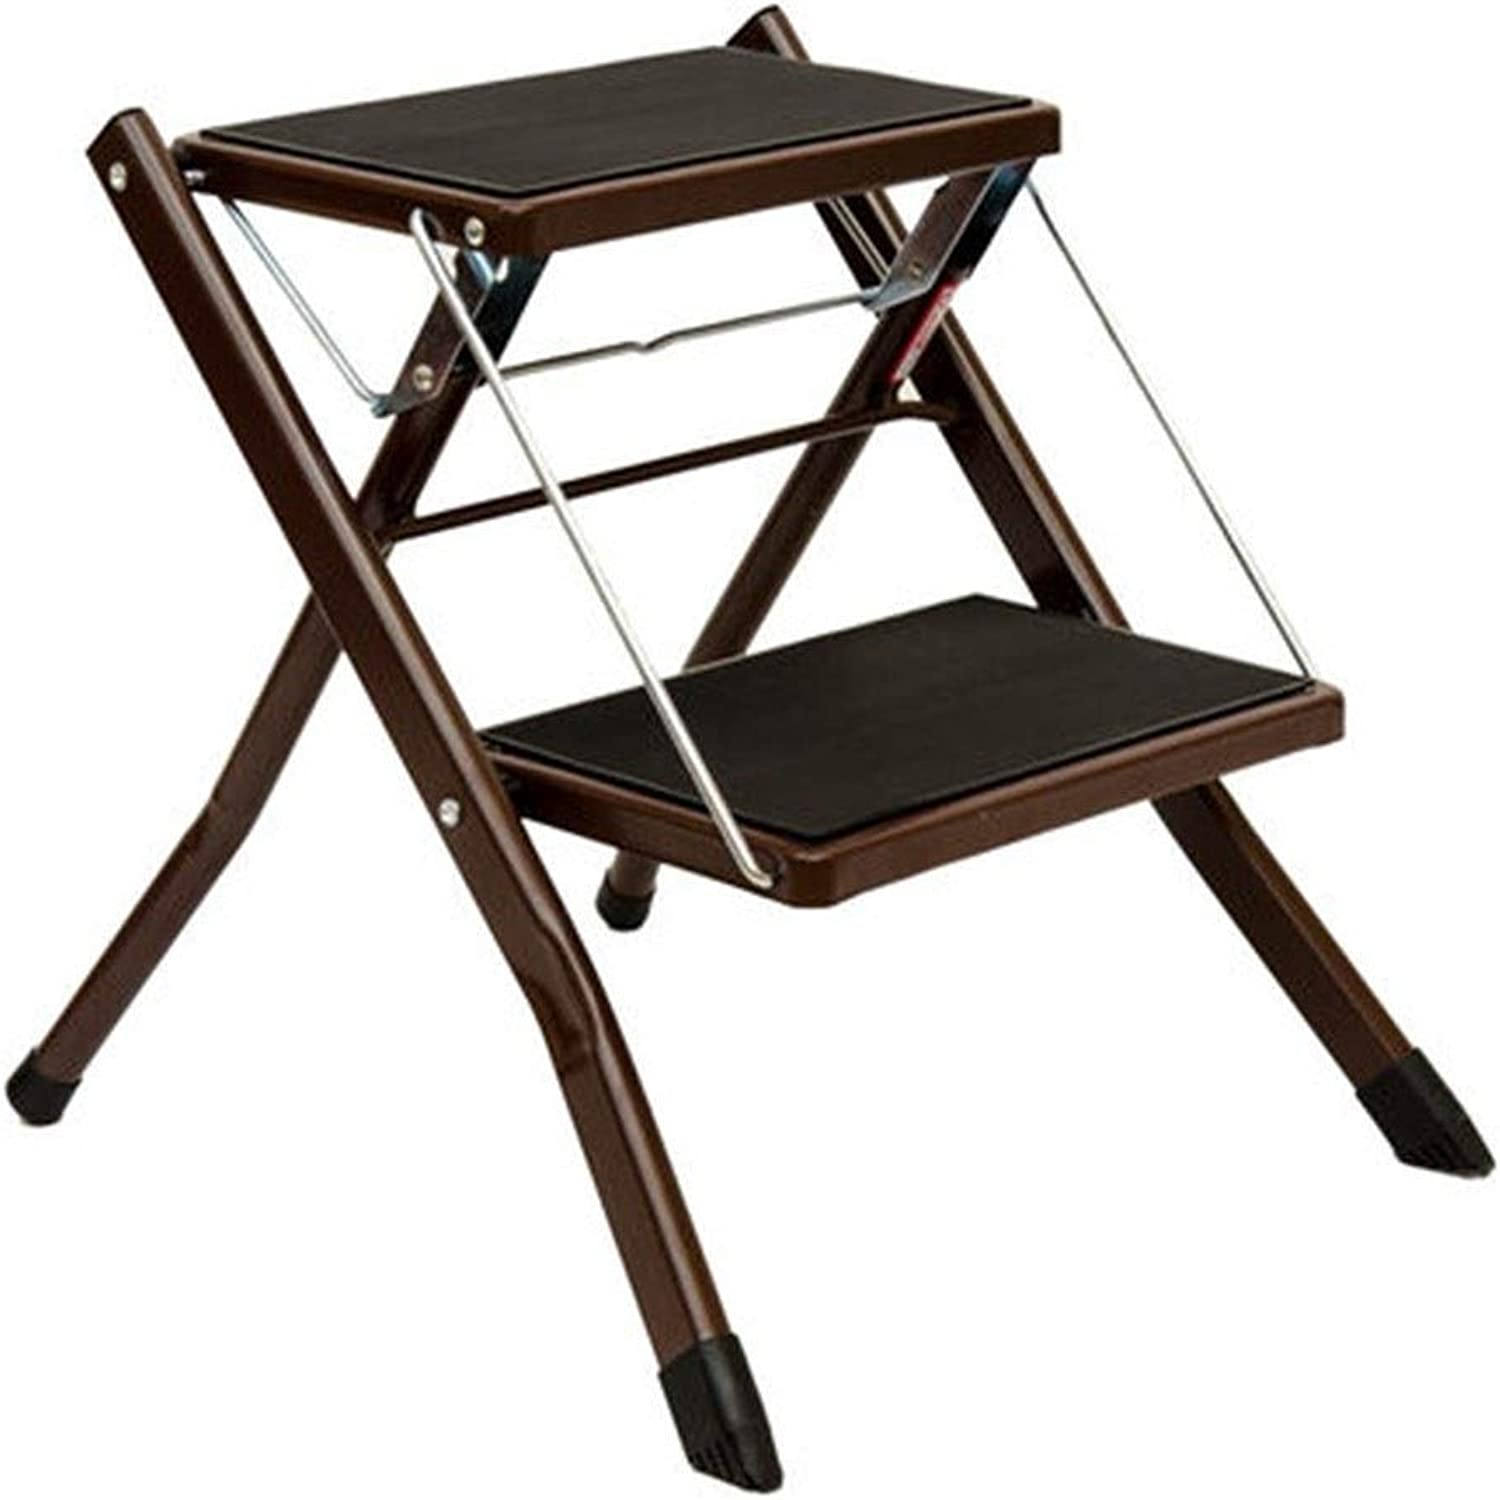 Stools Step Stool Iron Household Folding Ladder Stool Convenient Multi-Function Stool Home Two-Step Ladder Room Built-in Rack Supermarket Factory Ascending Ladder Indoor Outdoor Stool Ladder